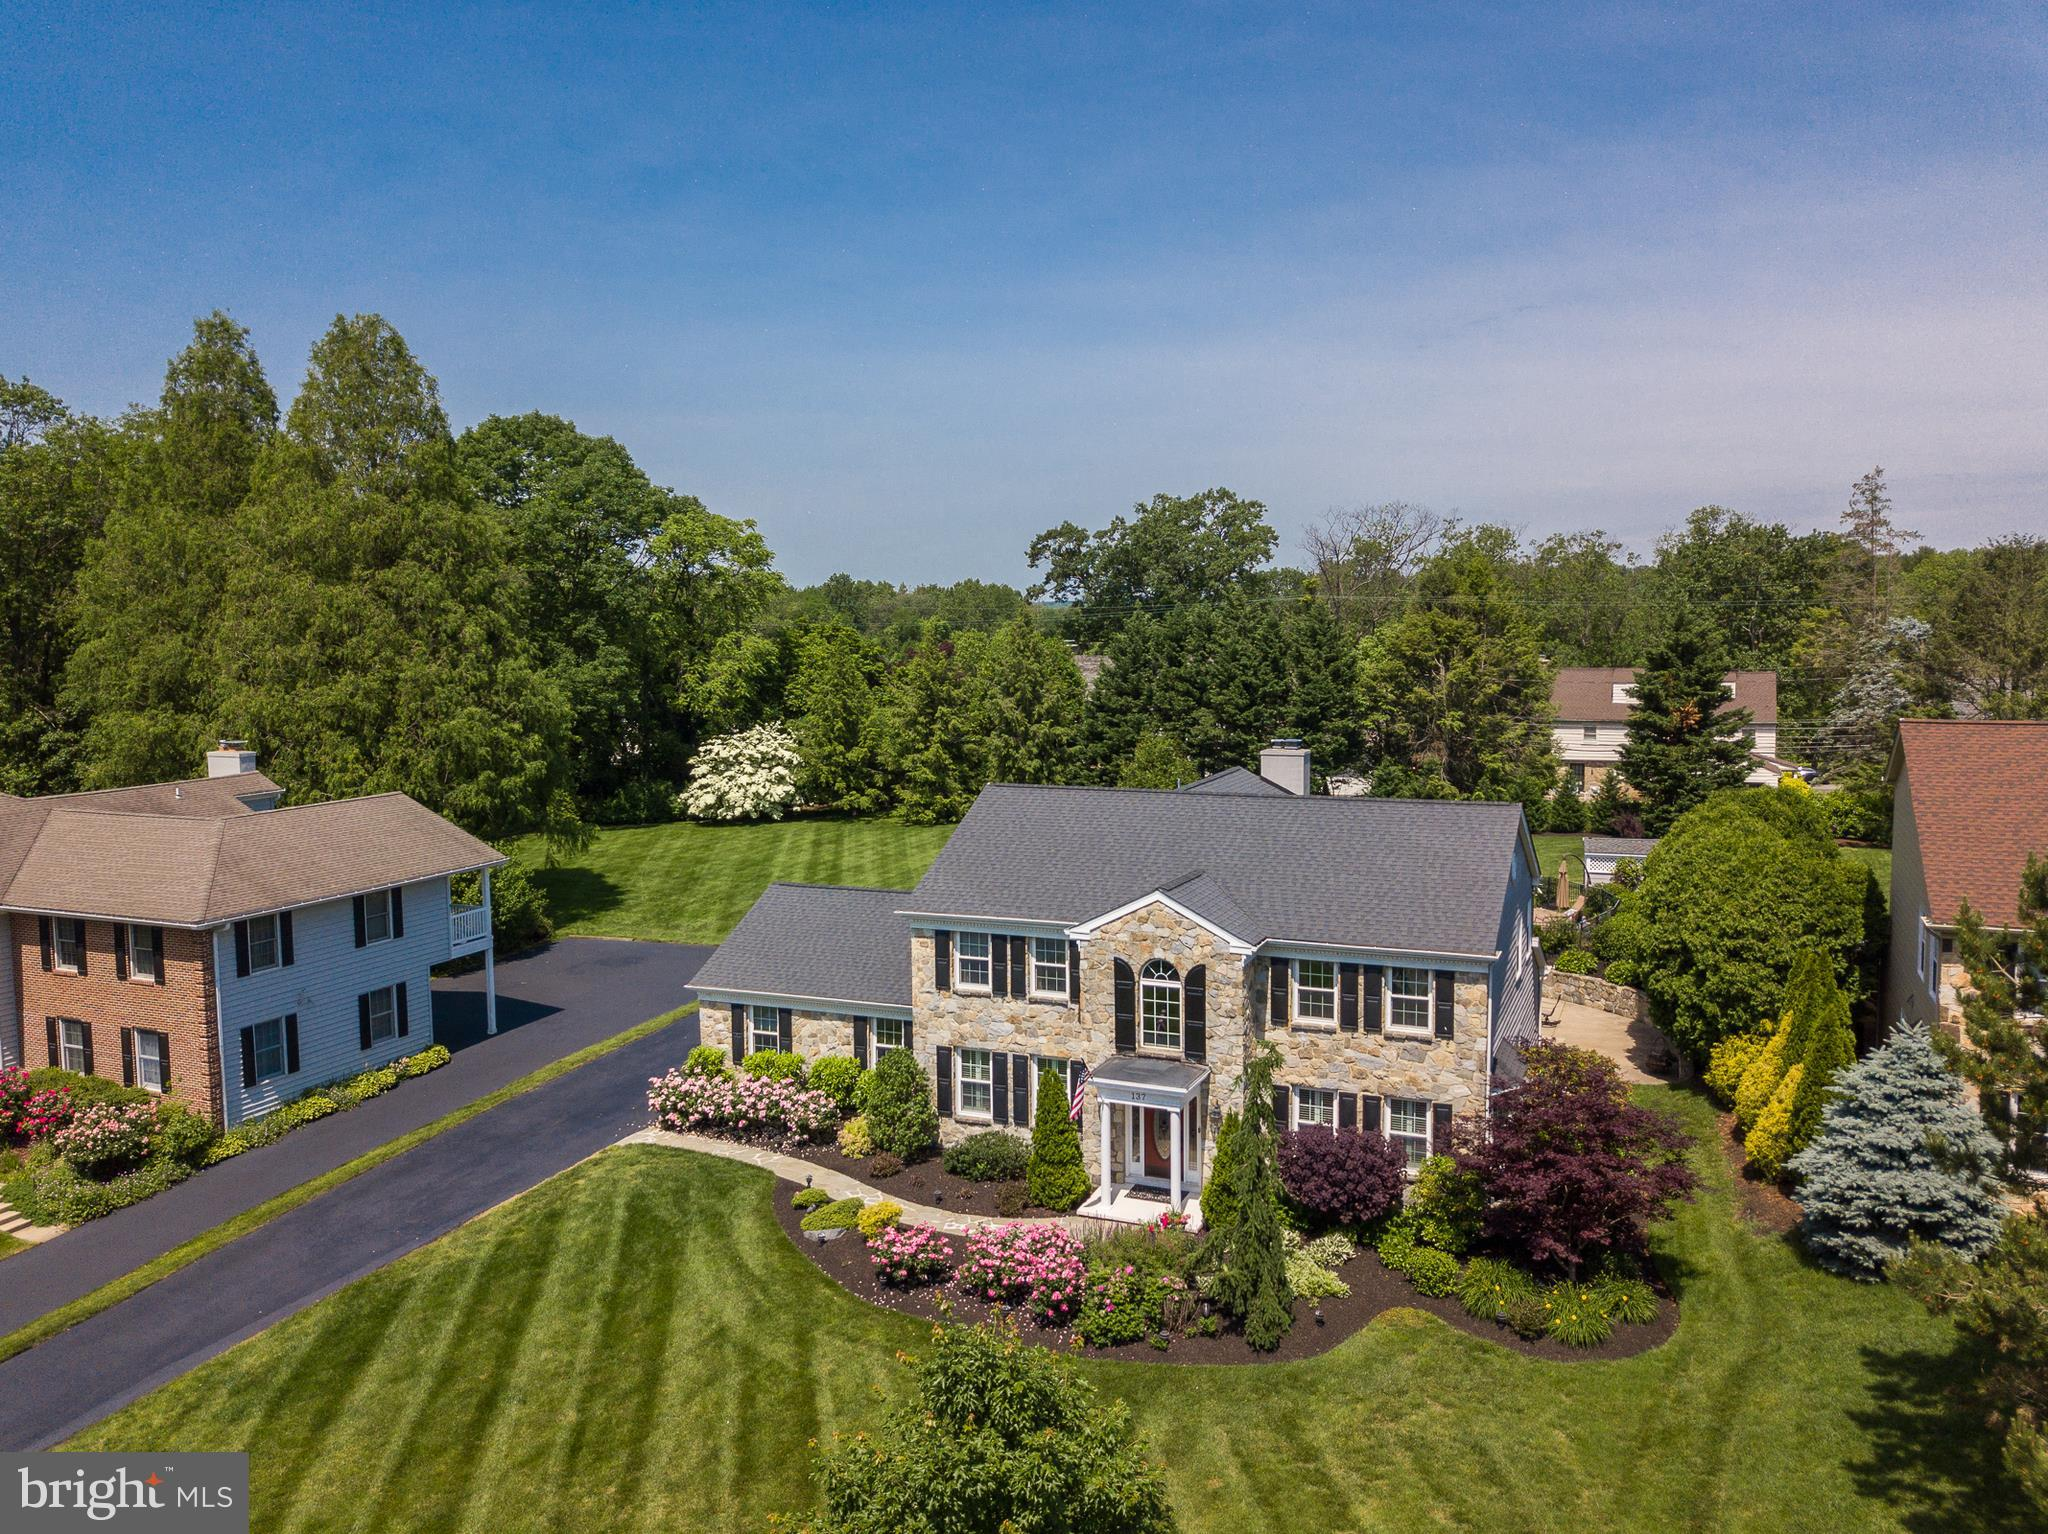 This picture perfect move-in ready, 4 bedroom and 2.5 bathroom Stone colonial located in Alapocas Pointe will not disappoint!  137 Augustine Cut Off has been meticulously cared for by its owners.  As soon as you pull up you will be blown away with the beautiful landscaping.  Enter in through the welcoming foyer and immediately notice a grand chandelier, the beautiful crown molding and pegged hardwood floors that travel throughout much of the home.  To the left are French doors that invite you into a large formal living room, great for entertaining.  To the right is a large dining room perfect for when the family comes to visit.  As you continue into the home you will enter the main family room with a beautiful stone wood burning or gas fireplace you decide, beautiful wet bar with marble countertop and a half bathroom. Attached to the living room is the kitchen which gives you an open flow to the family room.  The large kitchen with center island with seating for five is great for entertaining with family and friends.  Kitchen also features Granite countertops, abundance of custom built-in cherry cabinets painted white and glazed, high-end New stainless steel appliances and a sliding glass door to the outside and over to the 50~ Saline water pool with its own Jacuzzi attached to the poolwith a new diving board, perfect for hot summer days and cool summer nights.  The landscaping around the pool is so inviting you may never want to leave.  The pool has its own pool house, with plenty of storage, to protect all your outdoor equipment. Also, on the first floor is a two car garage with its own heating unit and Bilco doors to access the finished basement to complete the level.  Let~s head upstairs to the bedrooms.  The master bedroom will not disappoint with its own private suite bathroom and a closet large enough to live in, with custom built ins throughout.  Three additional bedrooms upstairs are spacious and include Casablanca remote ceiling fans in each room and a por